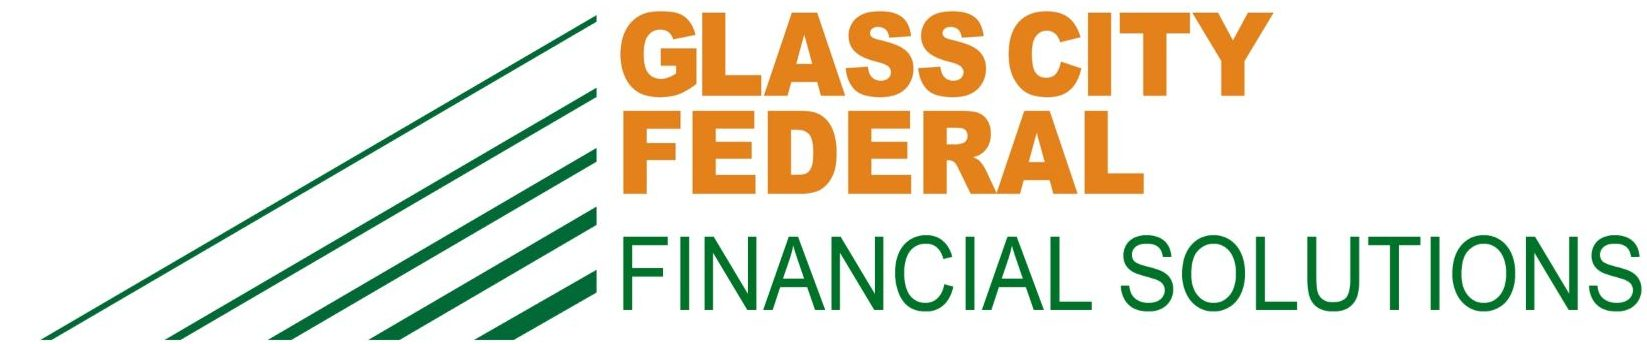 Glass City Federal Financial Solutions